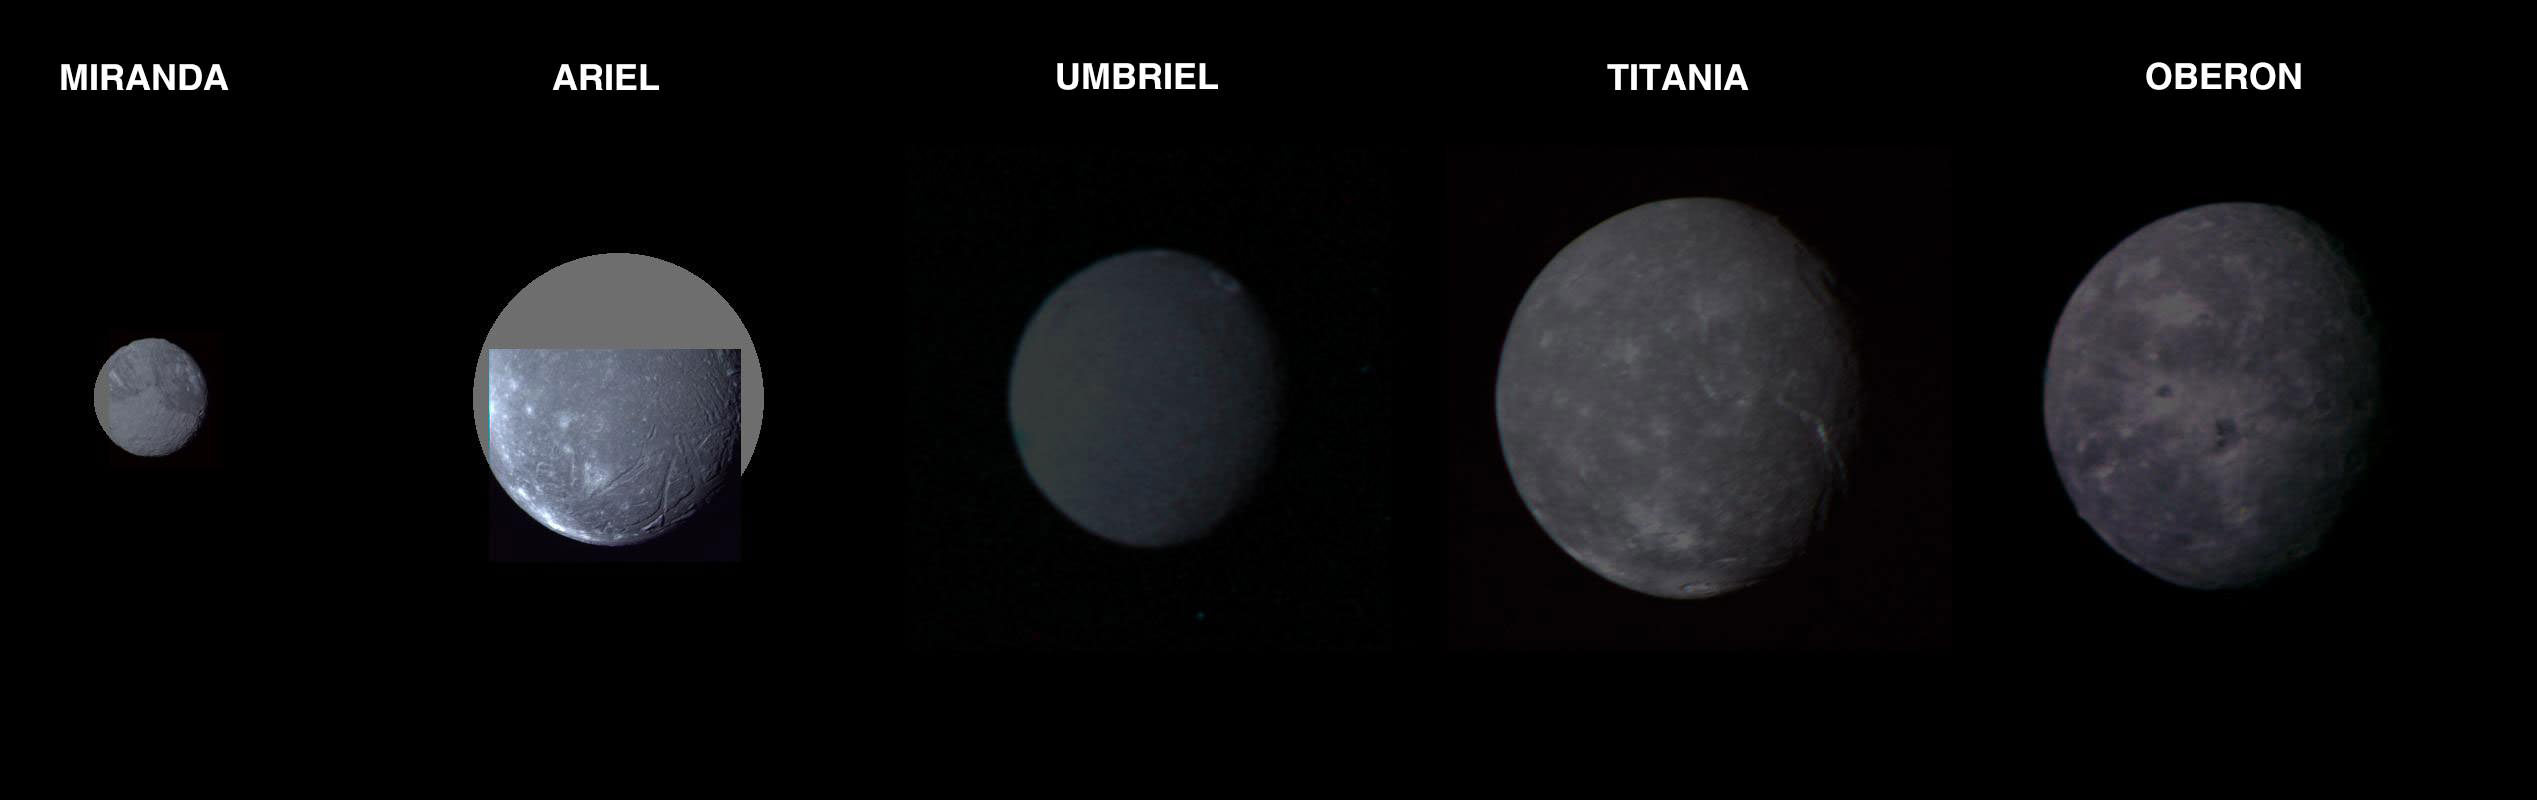 Uranus' Five Largest Moons